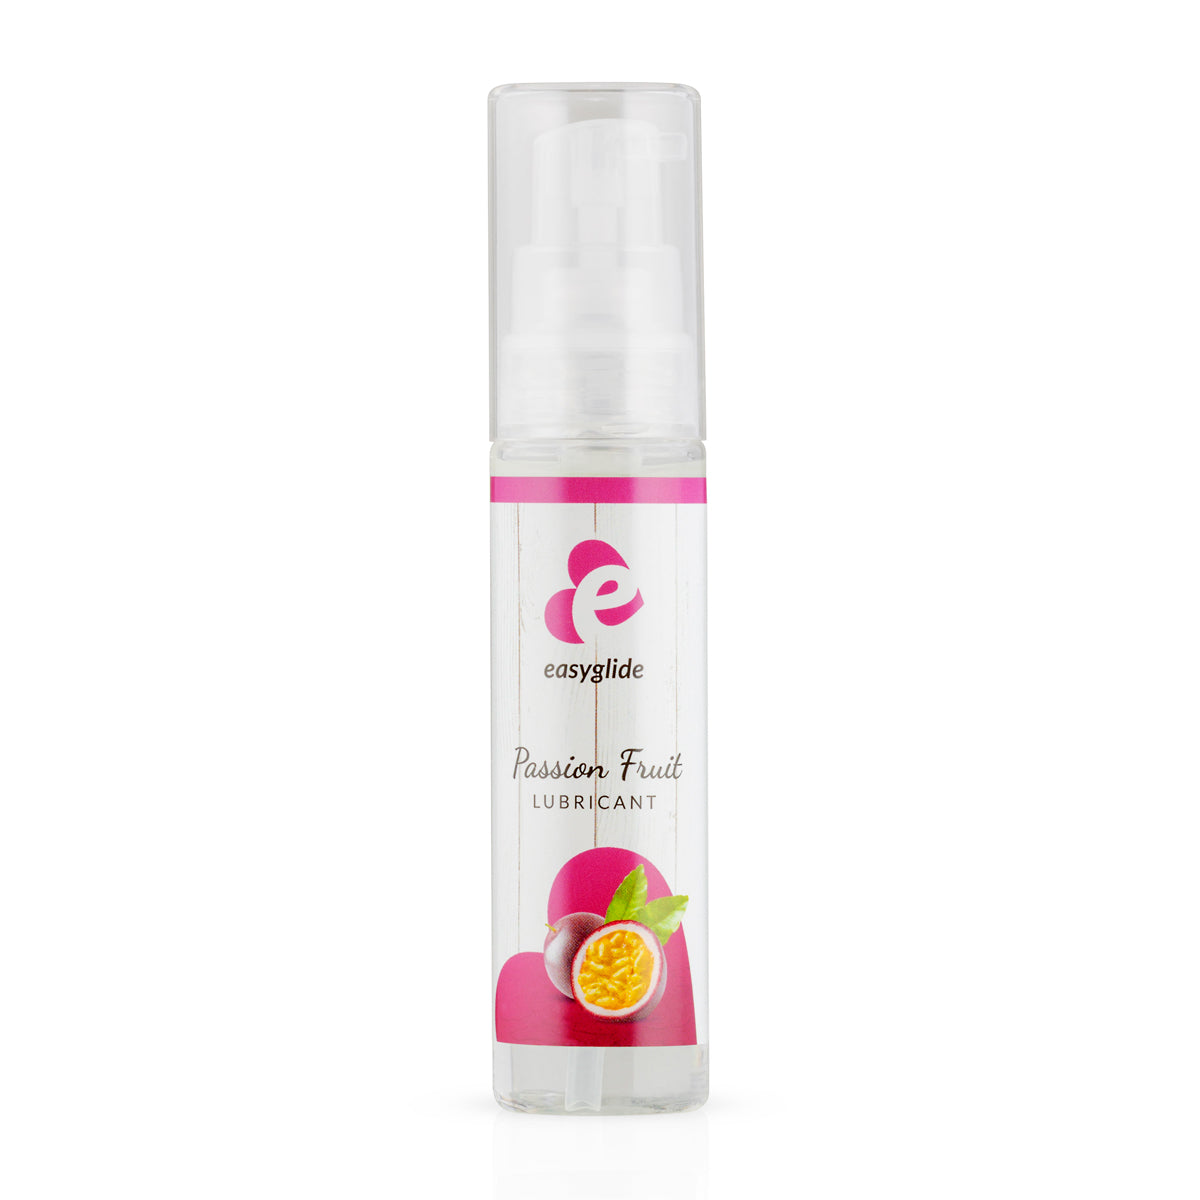 EasyGlide Passion Fruit Waterbased Lubricant - 30ml/1 fl oz - WorldSxxxWide2k15